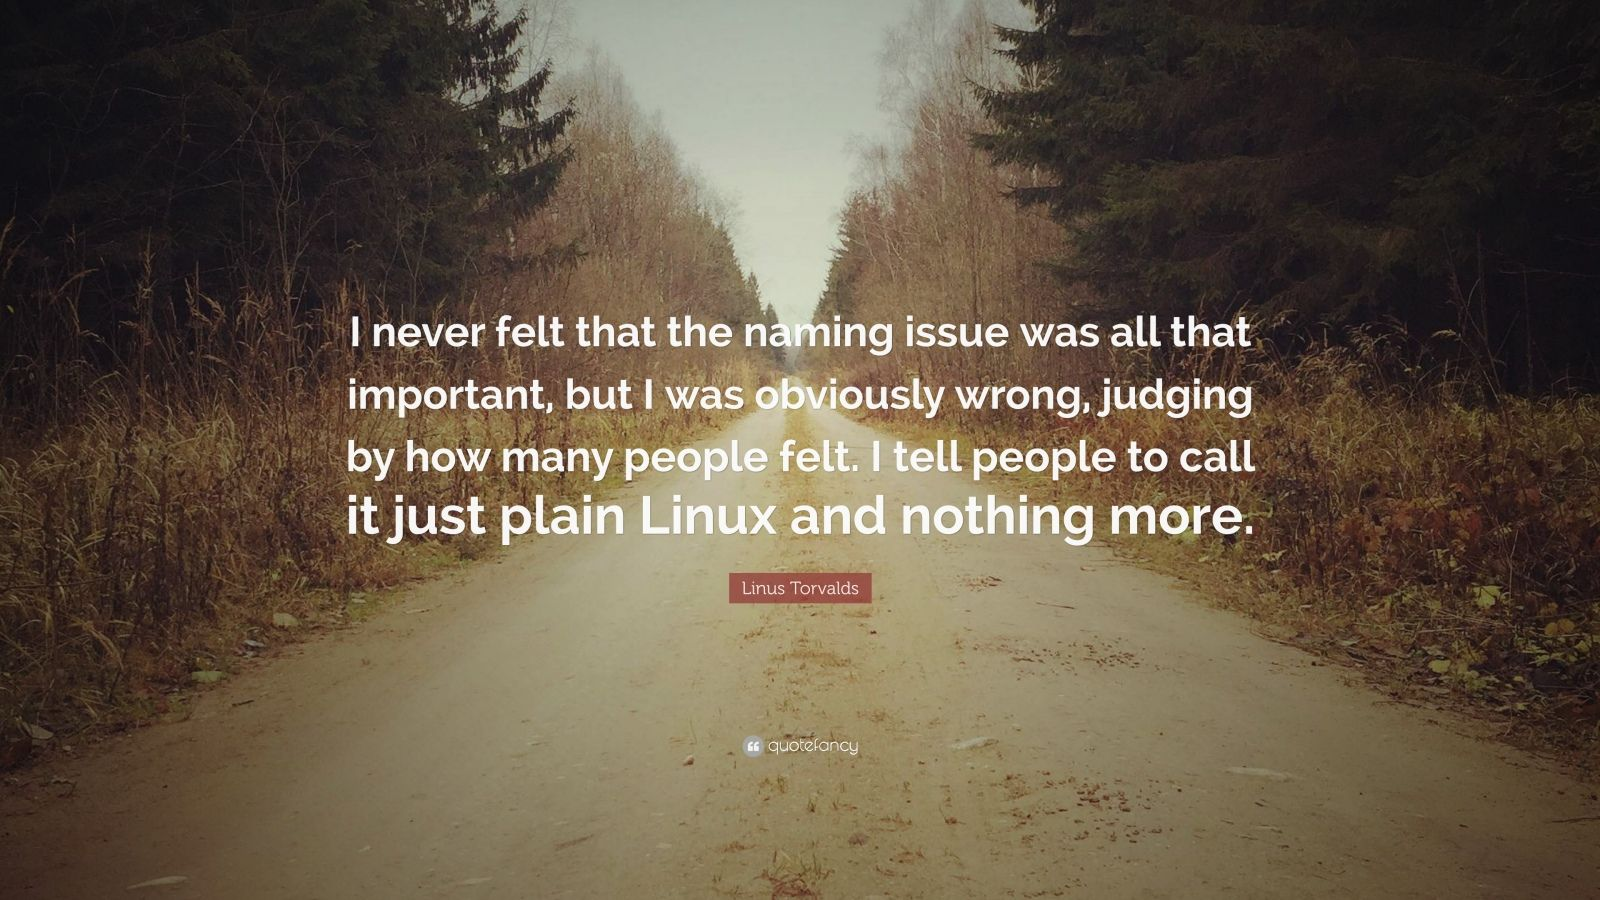 """Linus Torvalds Quote: """"I never felt that the naming issue was all that important, but I was obviously wrong, judging by how many people felt. I tell people to call it just plain Linux and nothing more."""""""